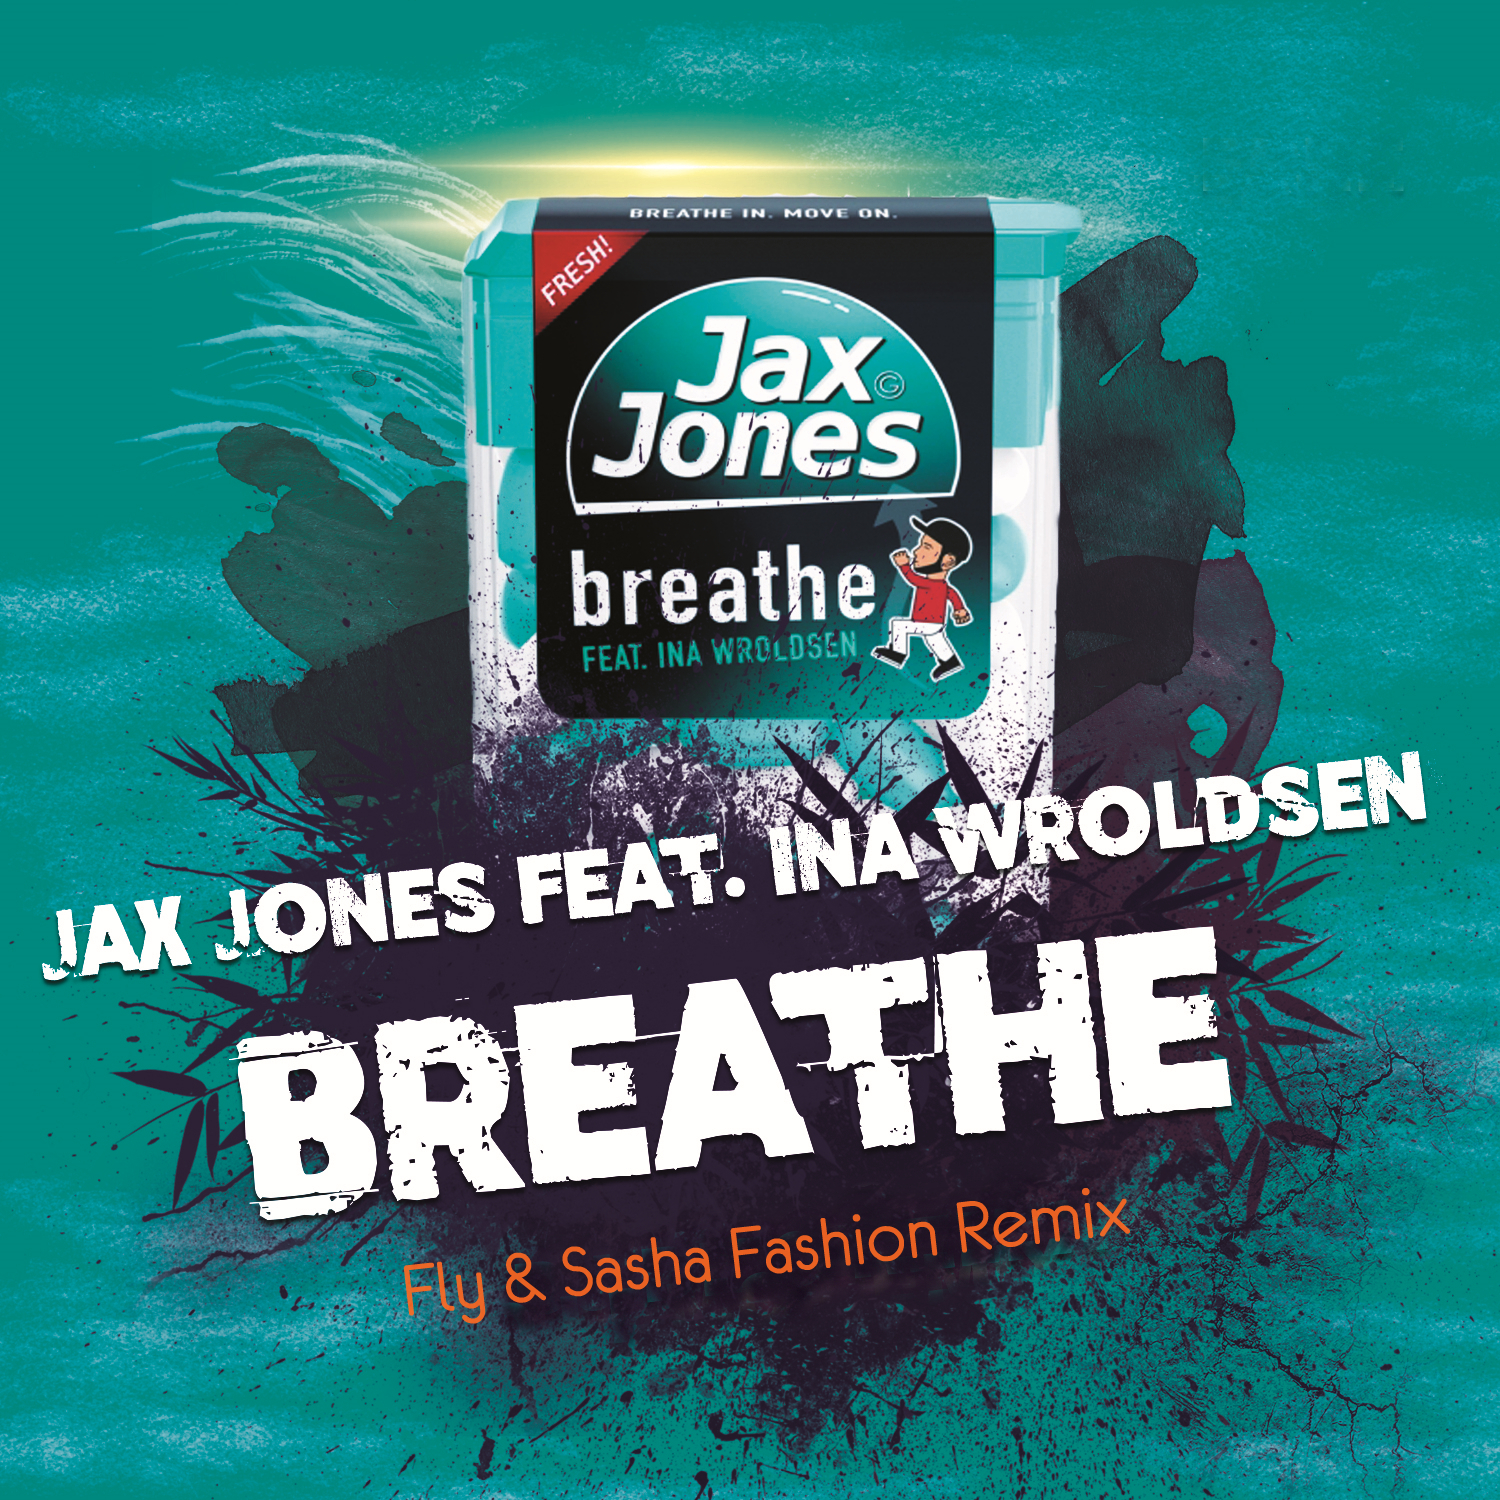 Jax Jones feat. Ina Wroldsen - Breathe (Fly & Sasha Fashion Remix)